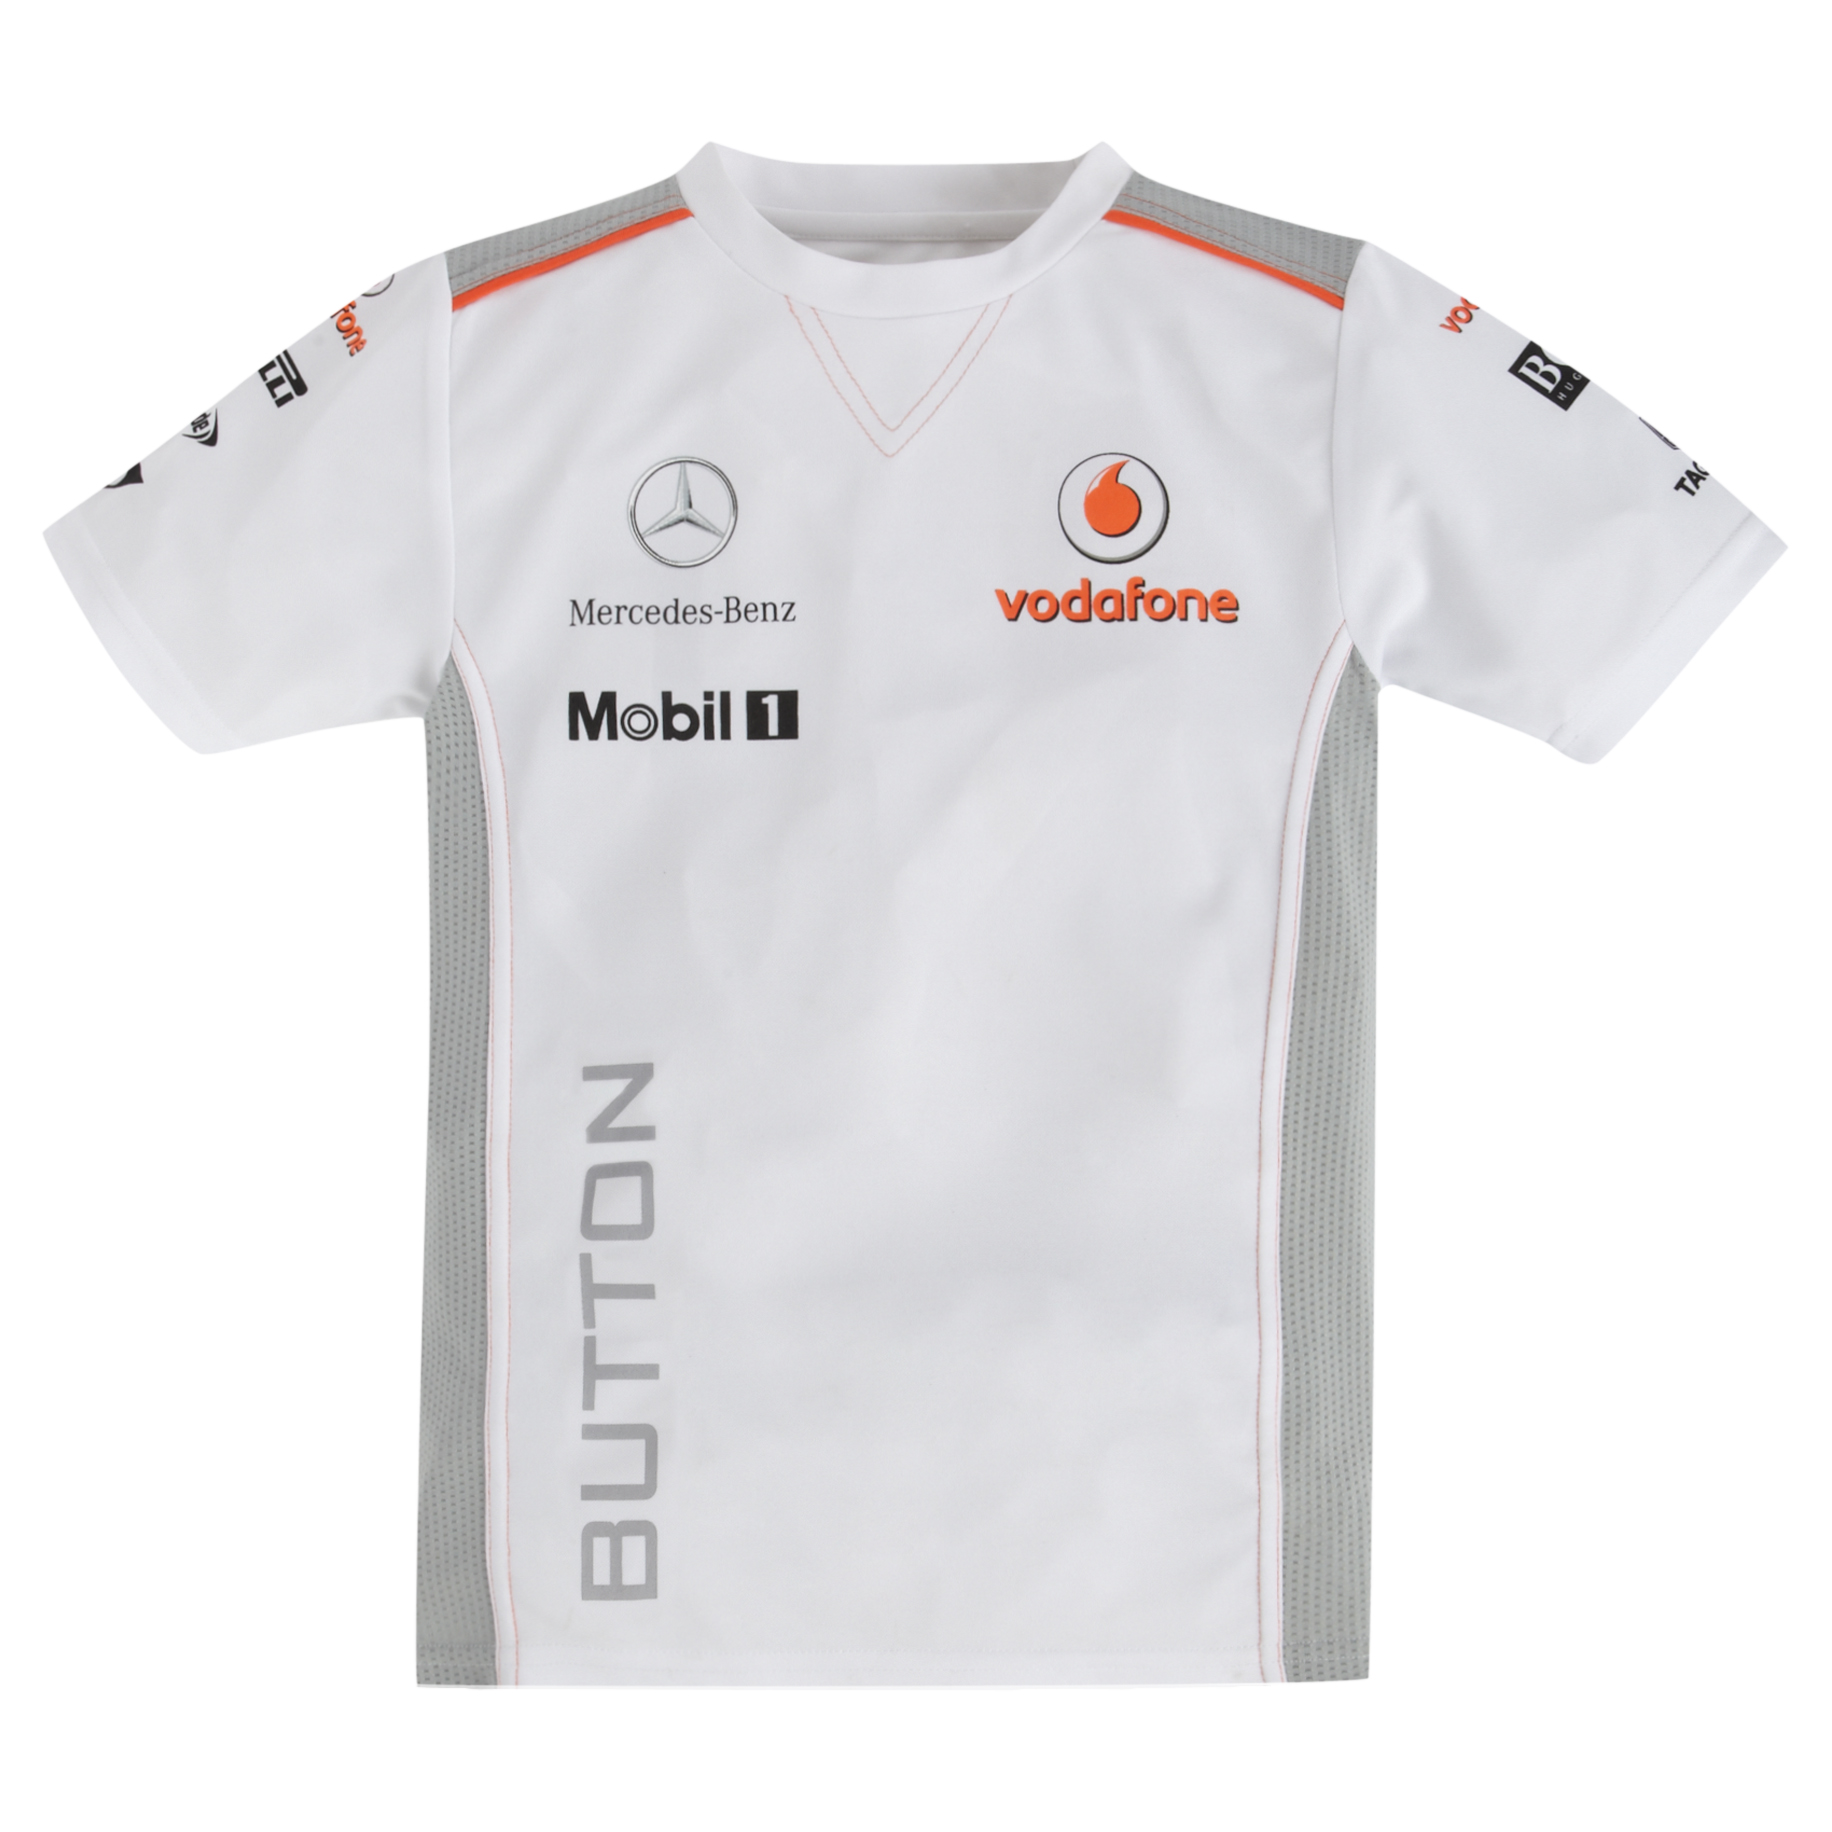 Vodafone McLaren Mercedes 2013 Button T-Shirt - Kids